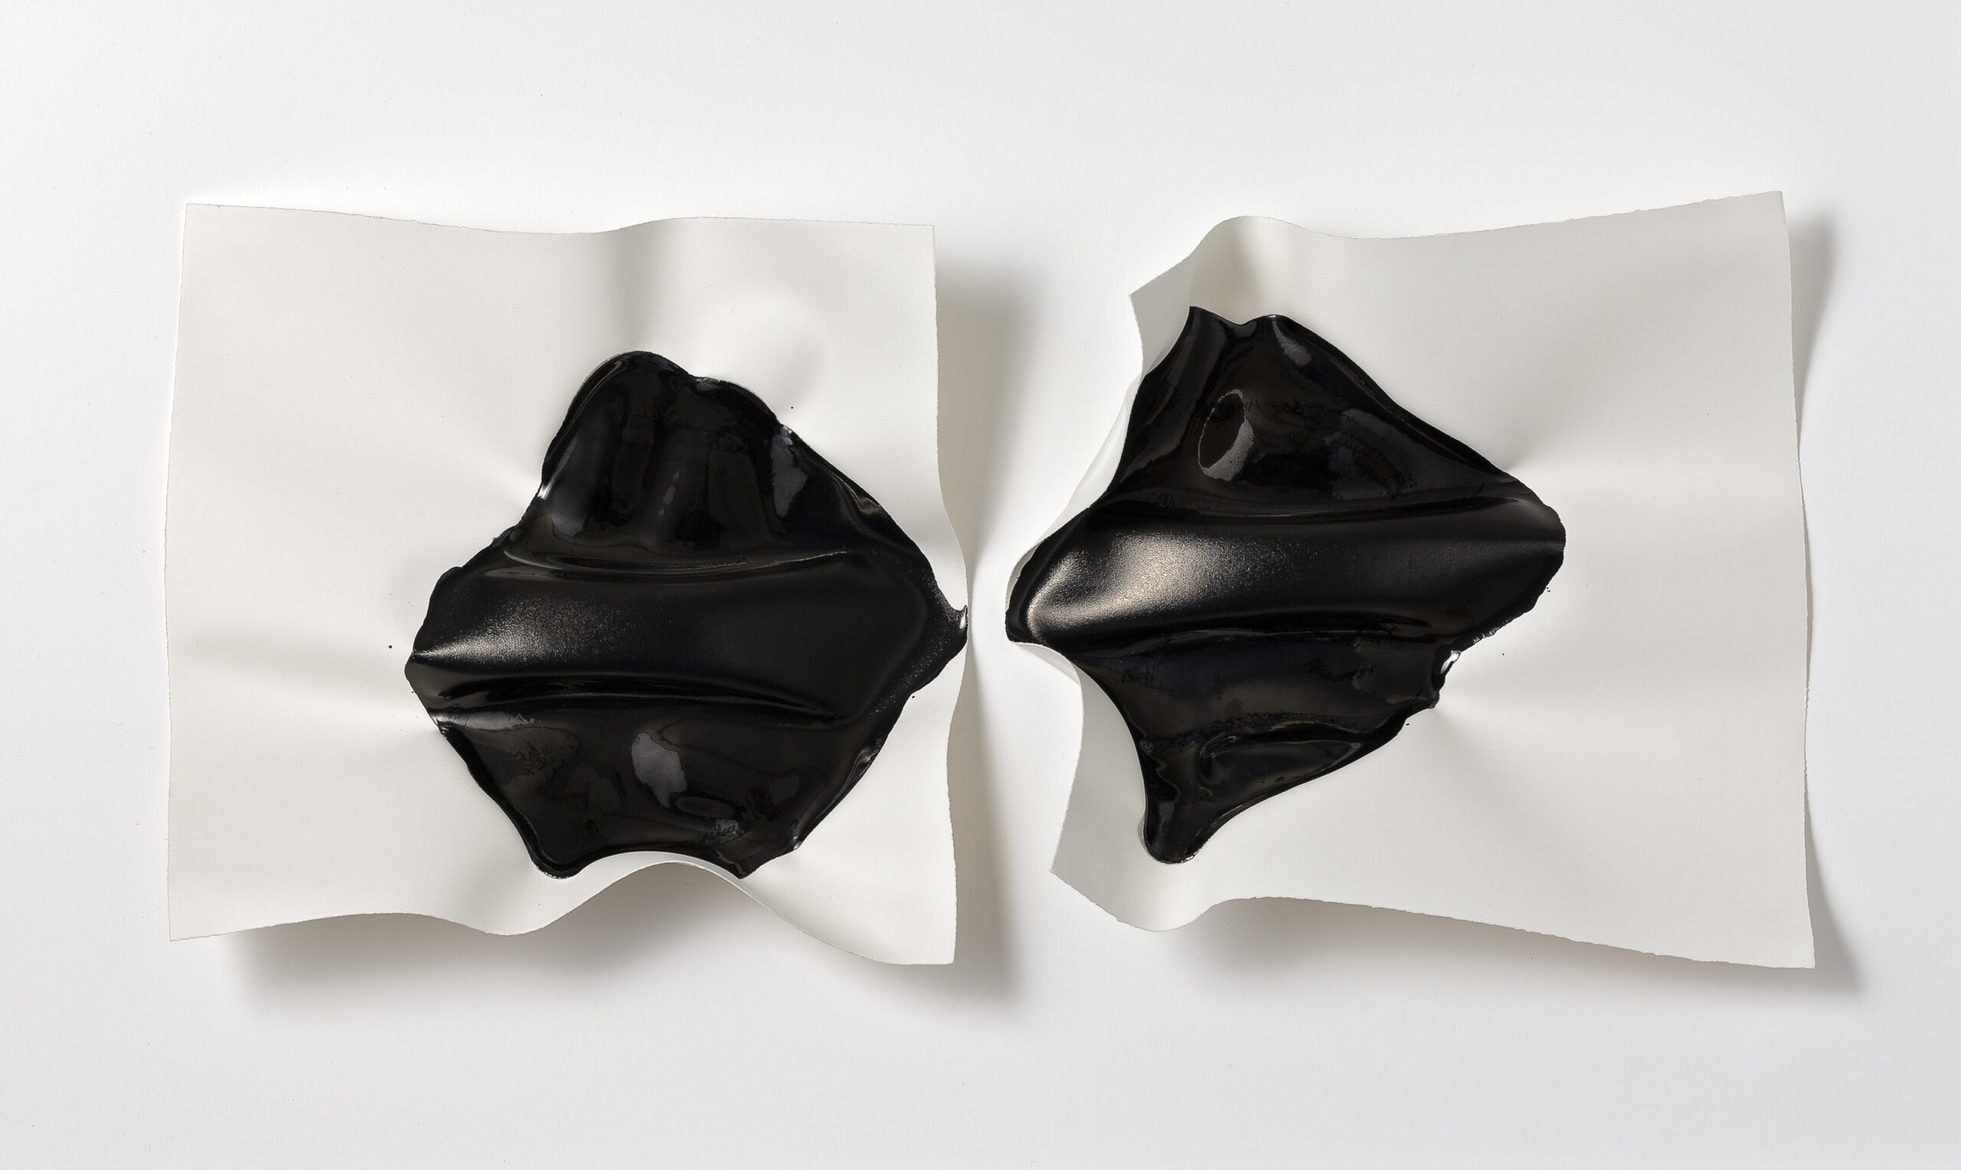 Emma Fielden, 'Confluence II', 2020, diptychs, ink on 300gsm Arches paper, framed, 74 x 45 cm